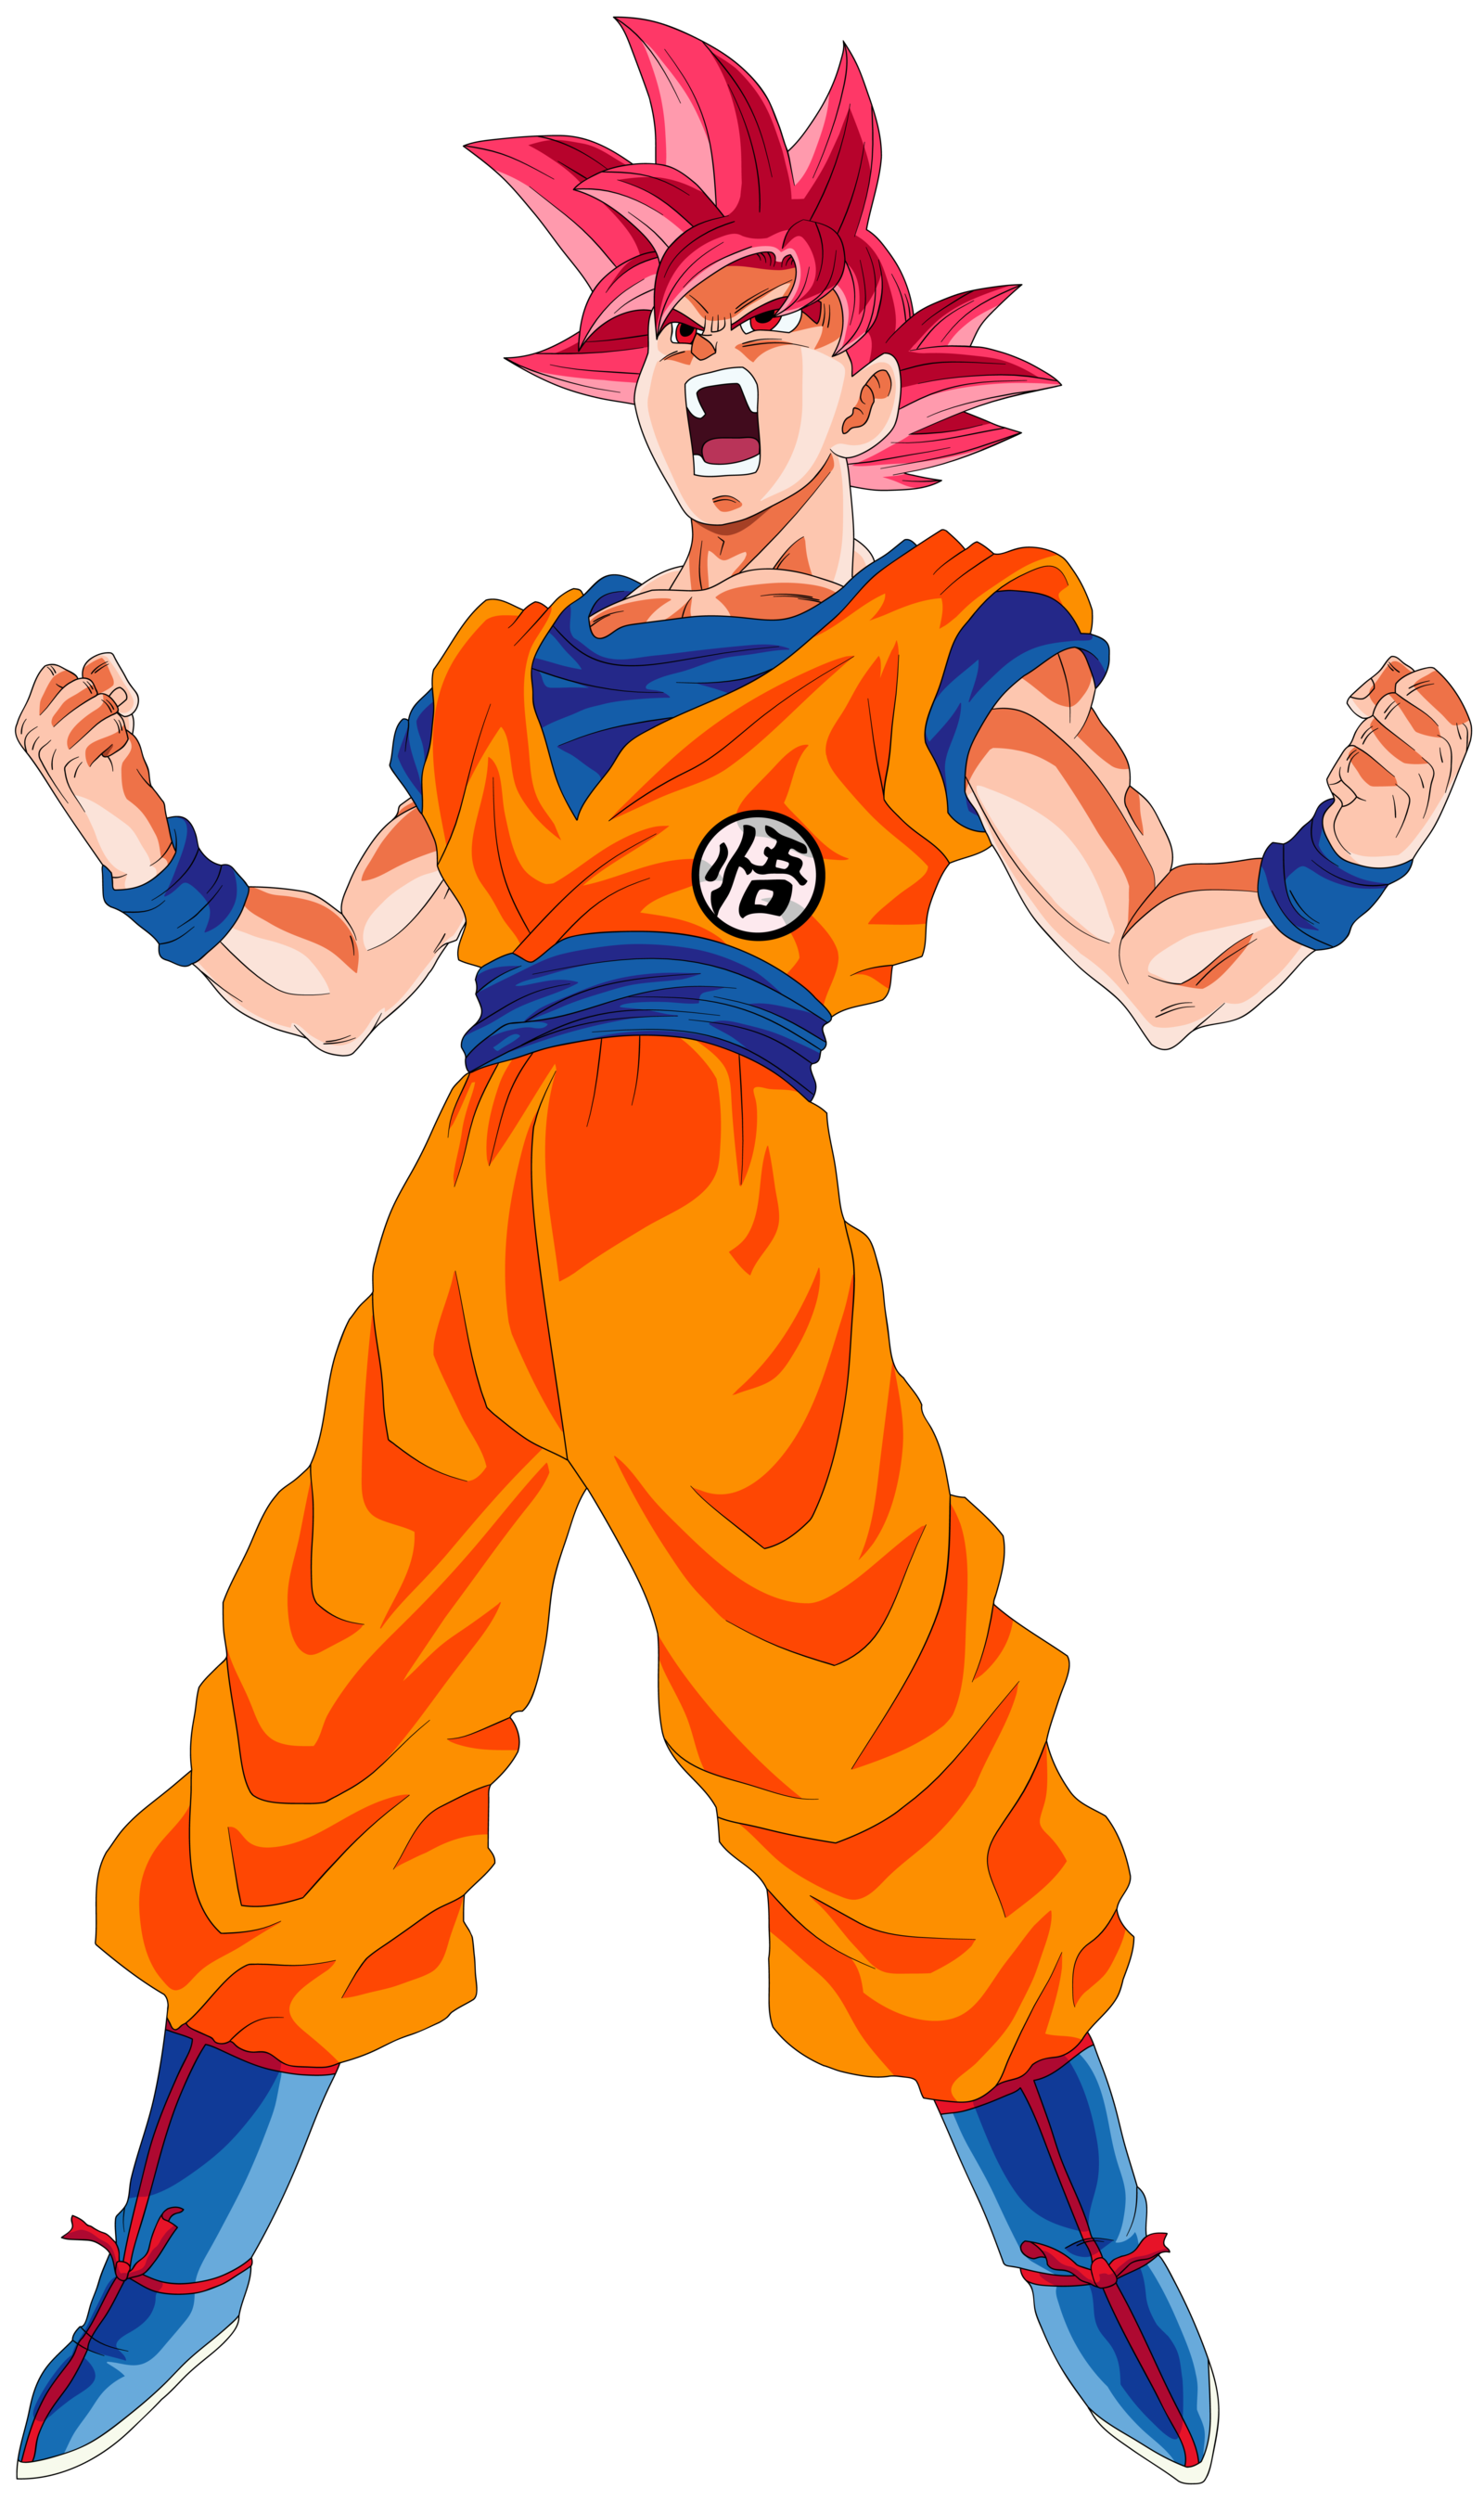 Goku png super saiyan god. Image power up palette